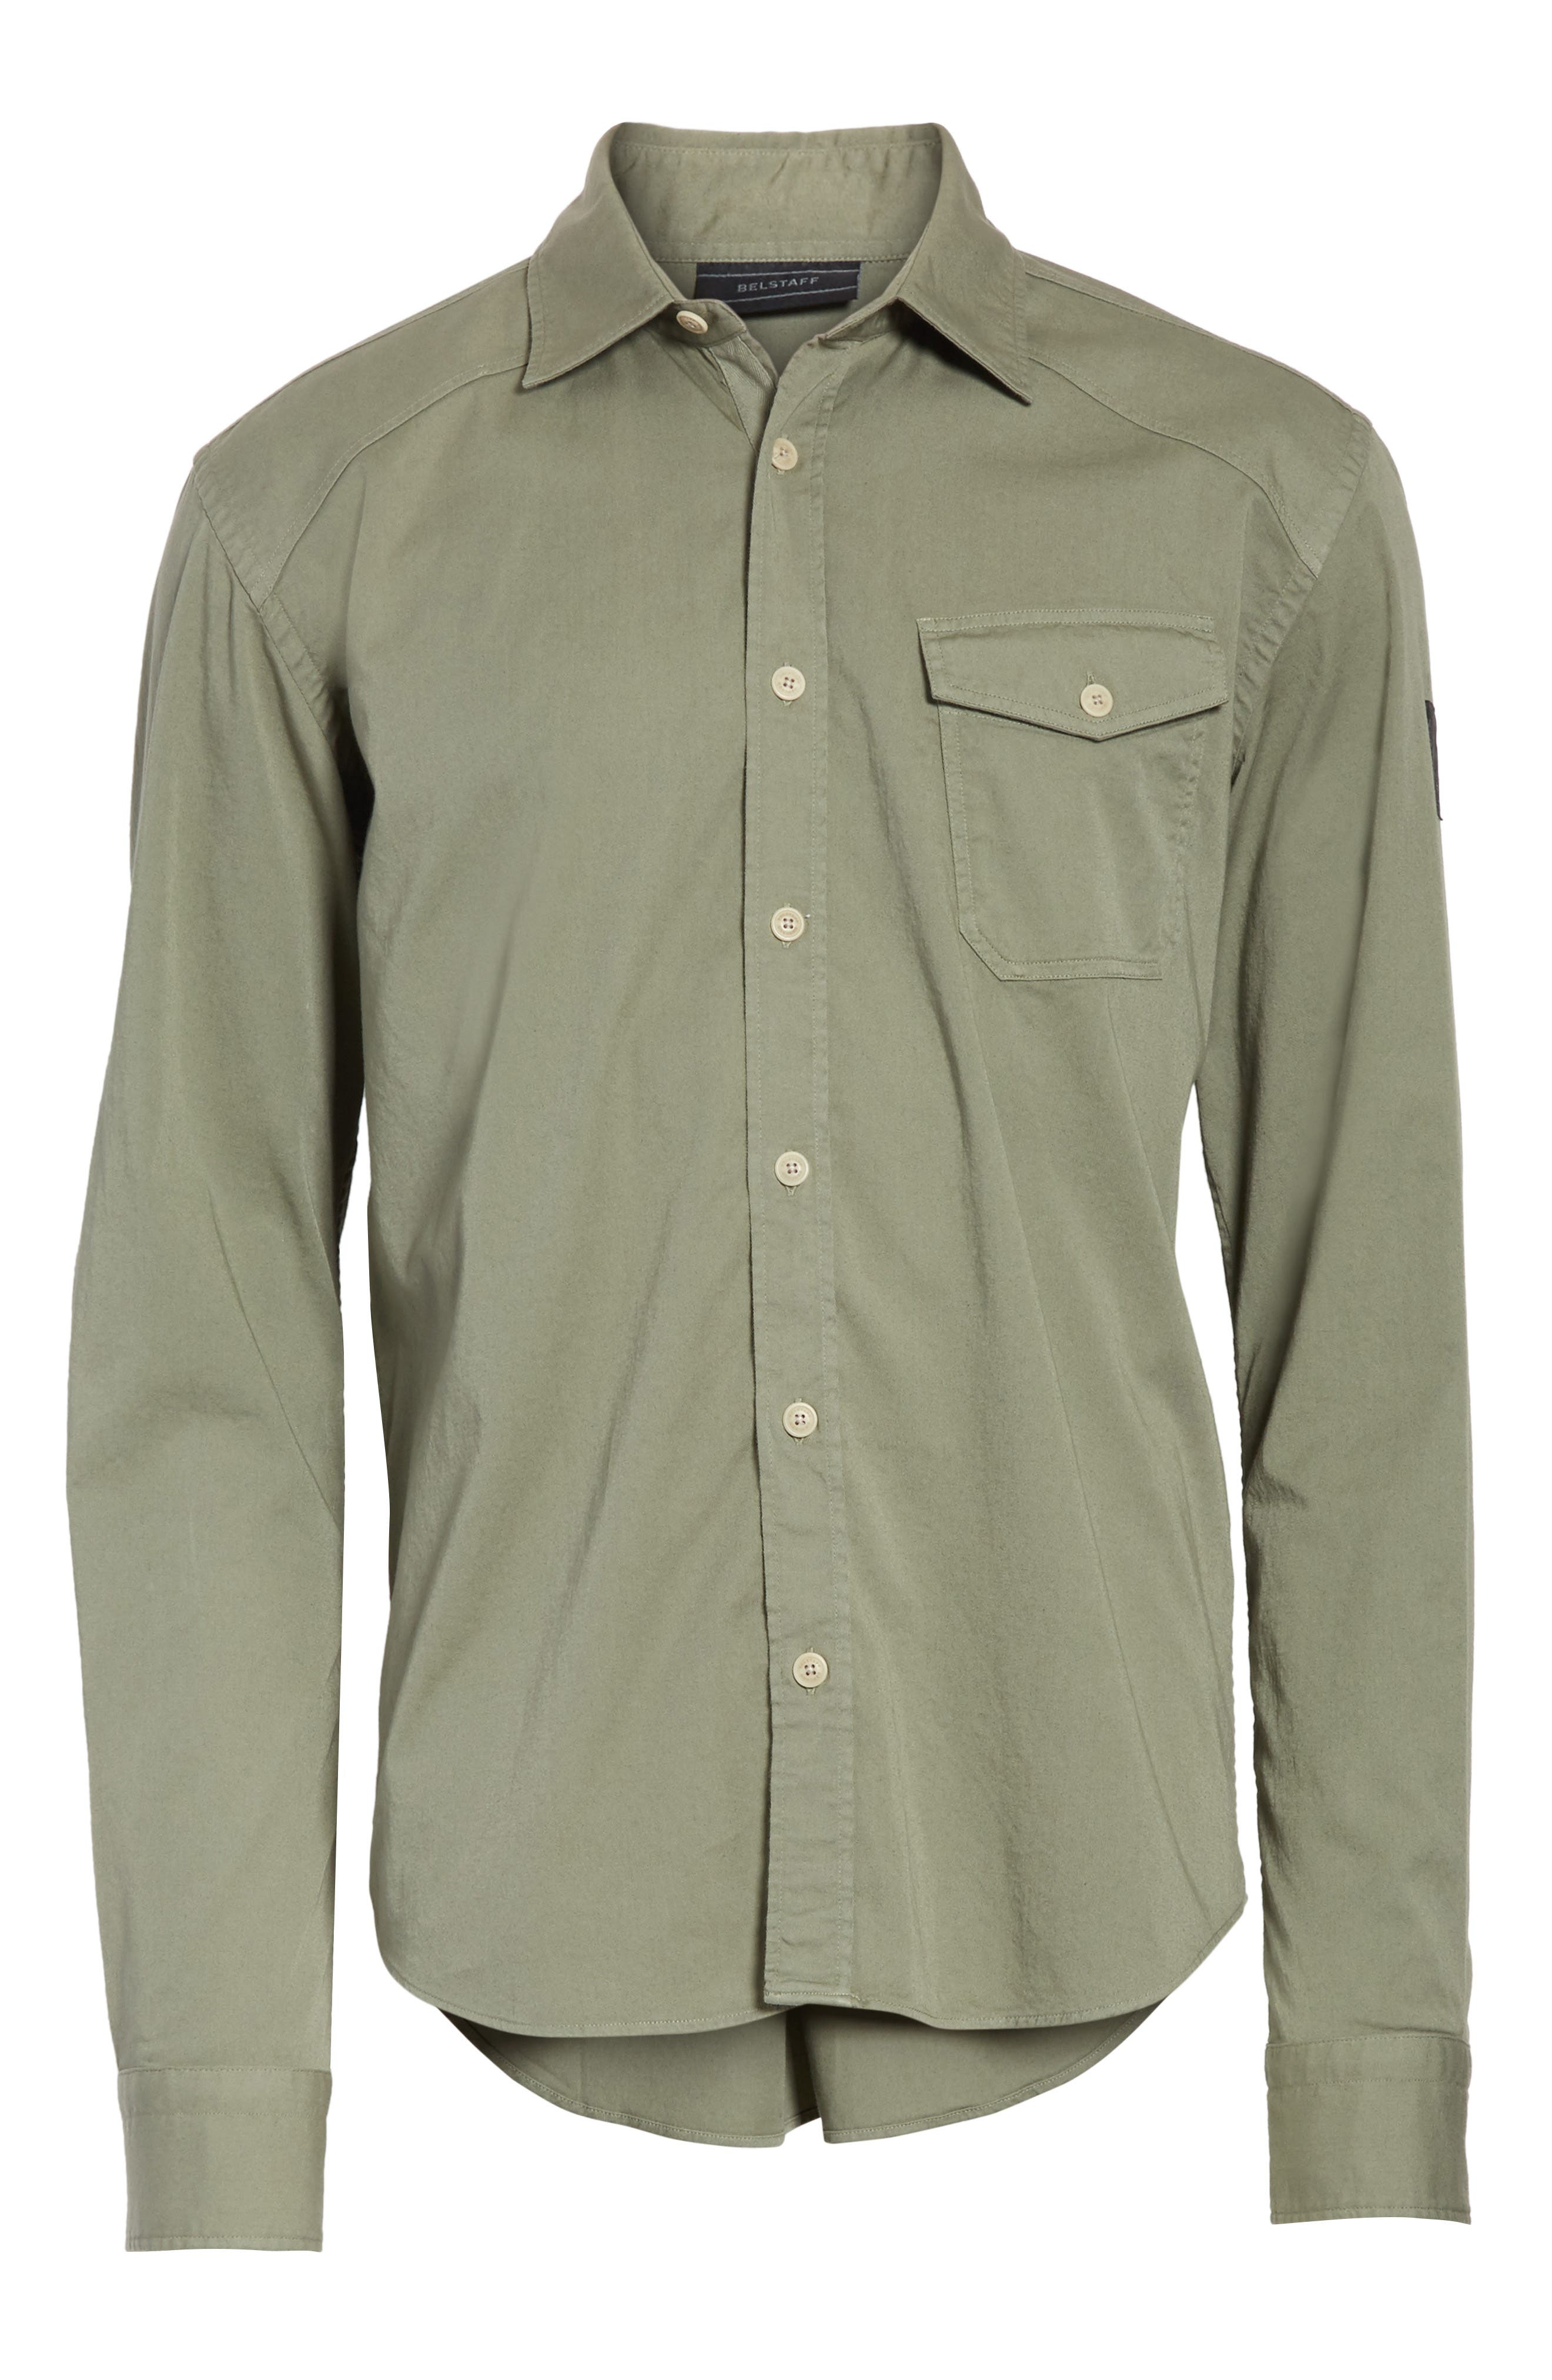 Steadway Extra Slim Fit Sport Shirt,                             Alternate thumbnail 6, color,                             033